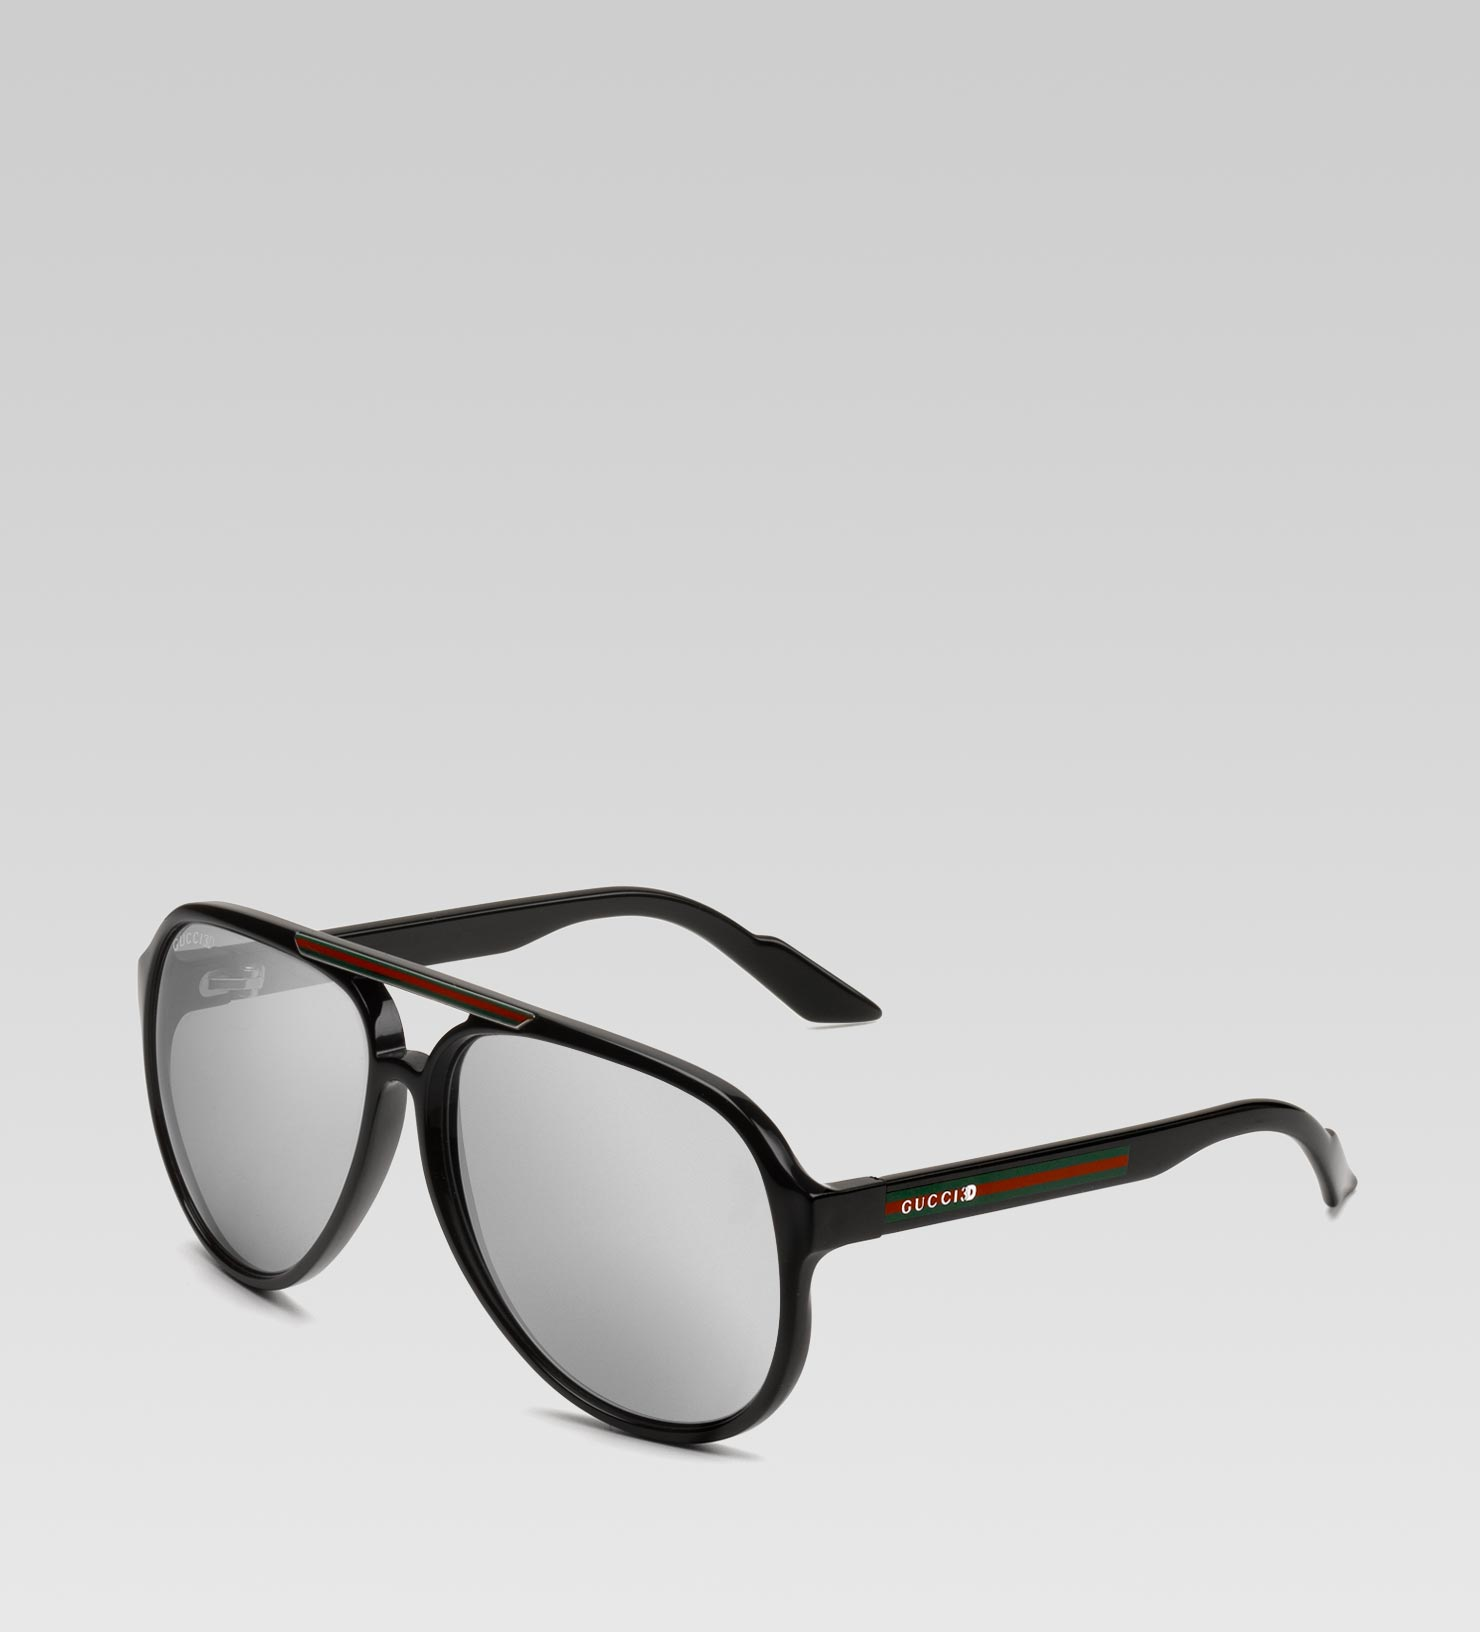 0816a14b54 Lyst - Gucci 3d Glasses with Gucci 3d Detail and Signature Web On ...